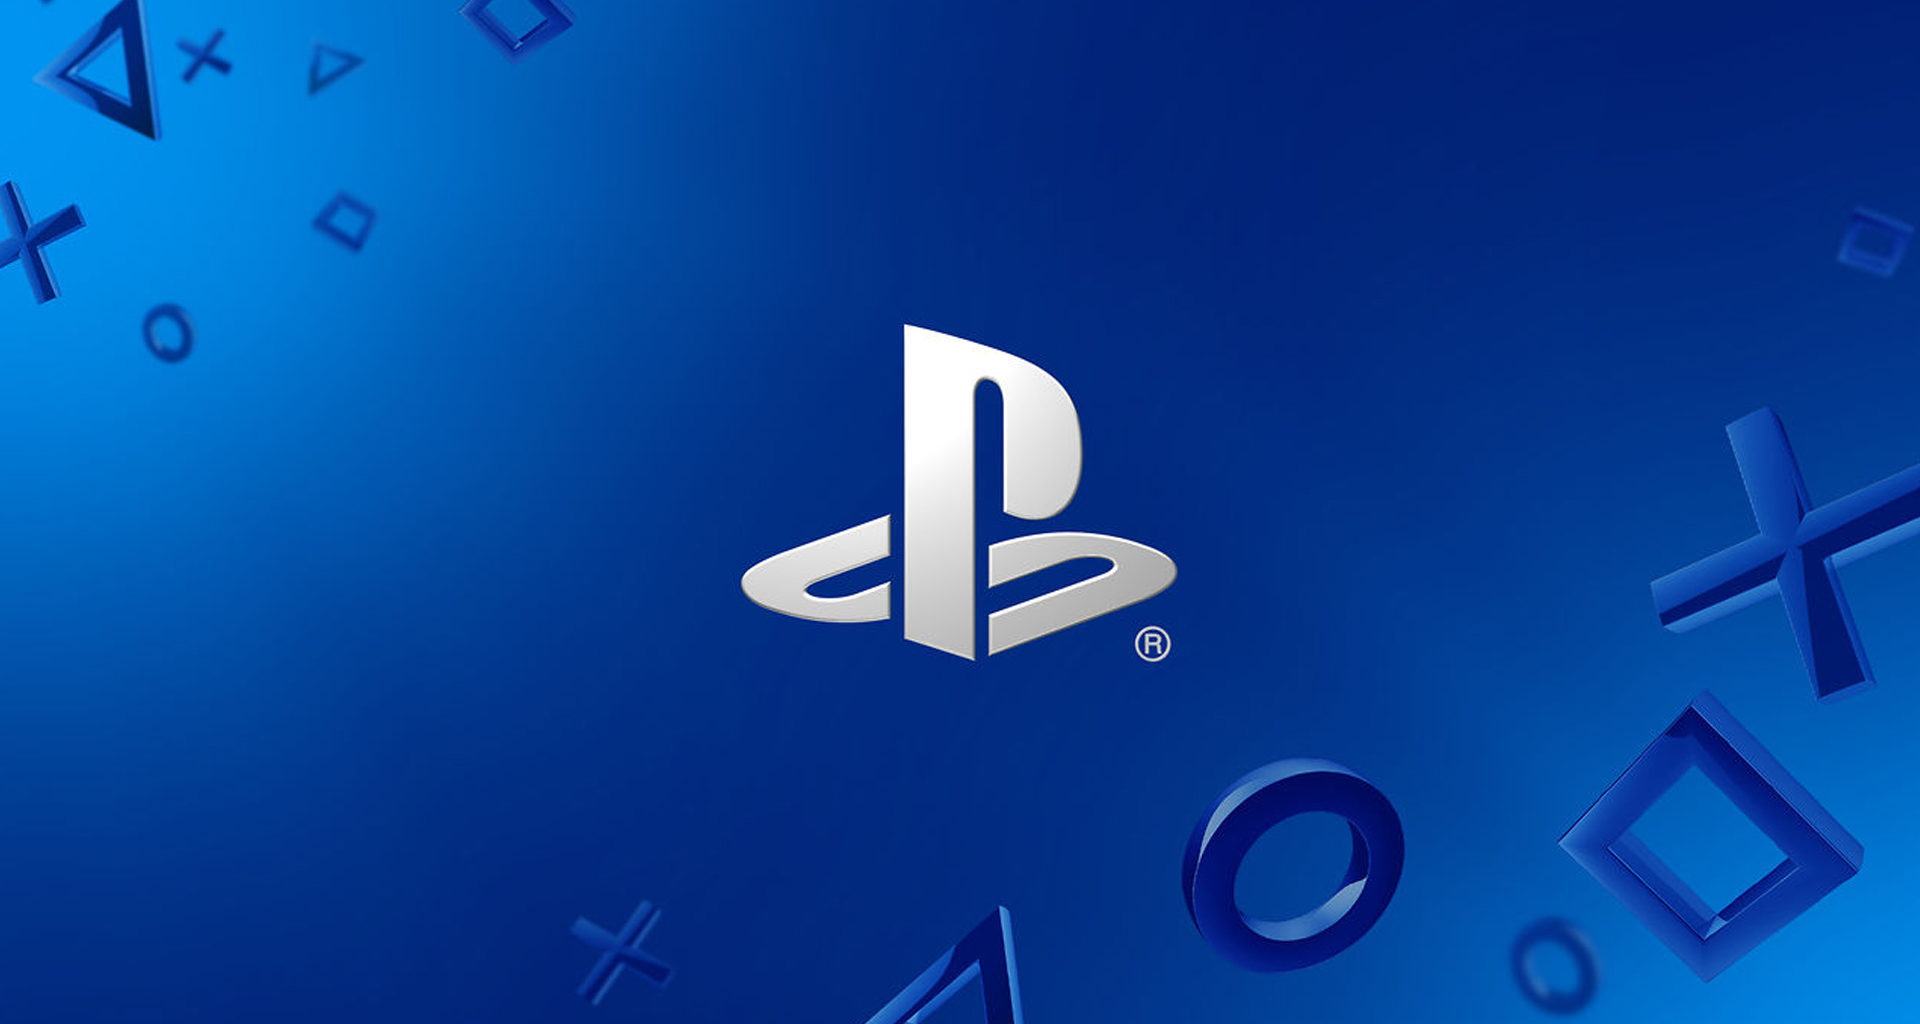 Sony PlayStation 5 will come with major streaming services at launch